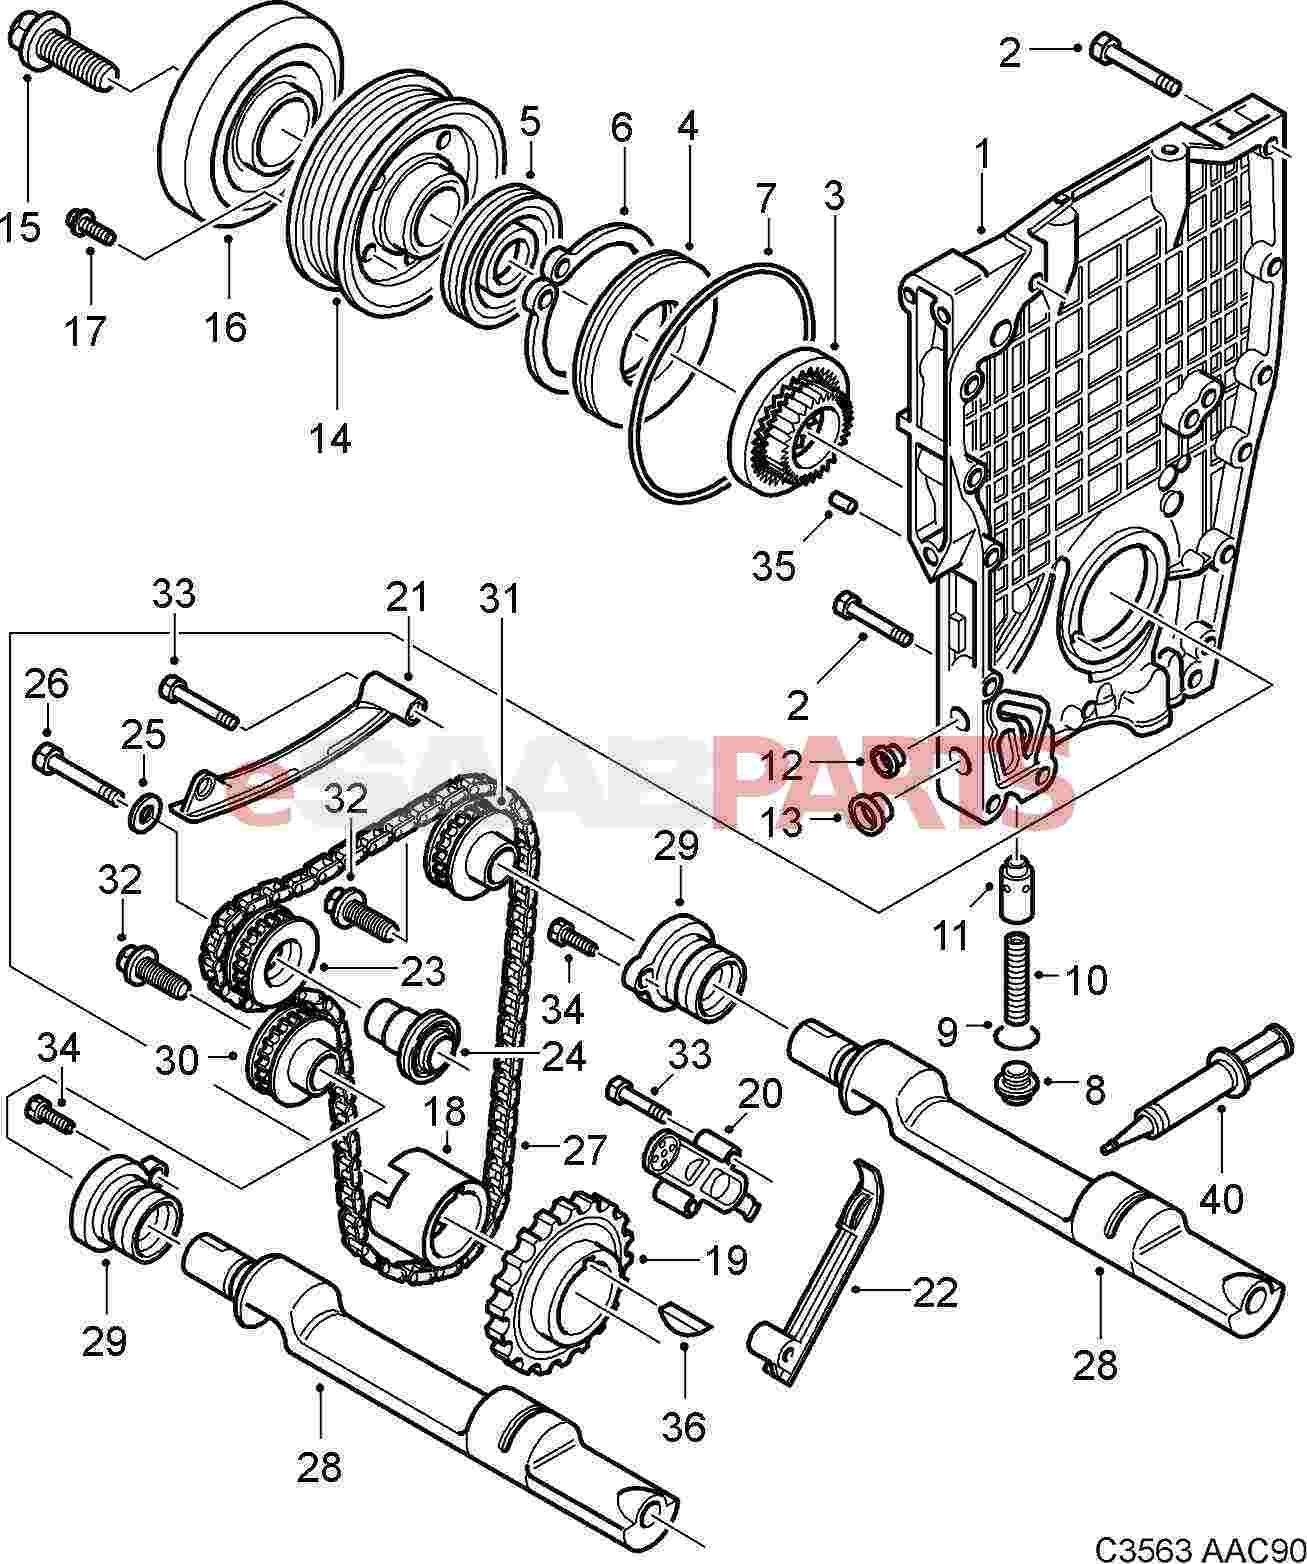 saab 900 engine parts diagram 97  saab  auto wiring diagram